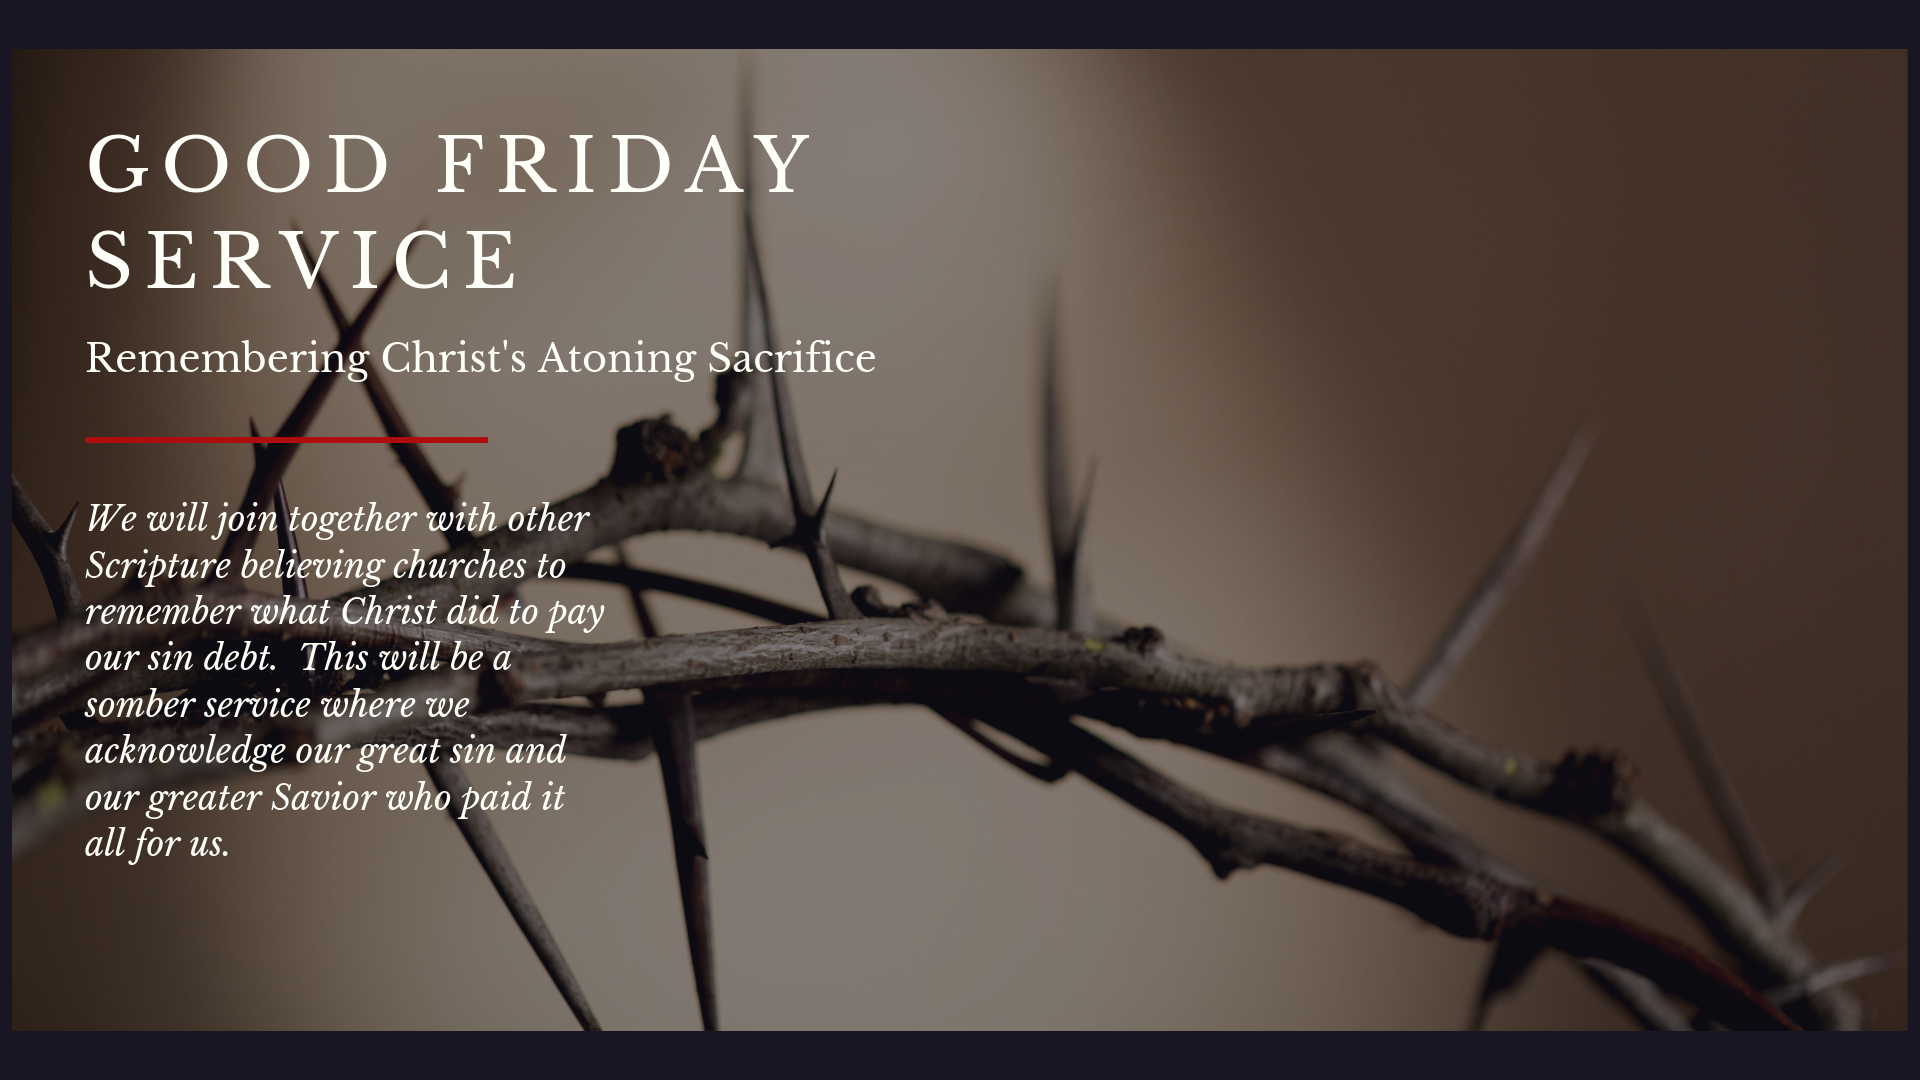 Good Friday service.png